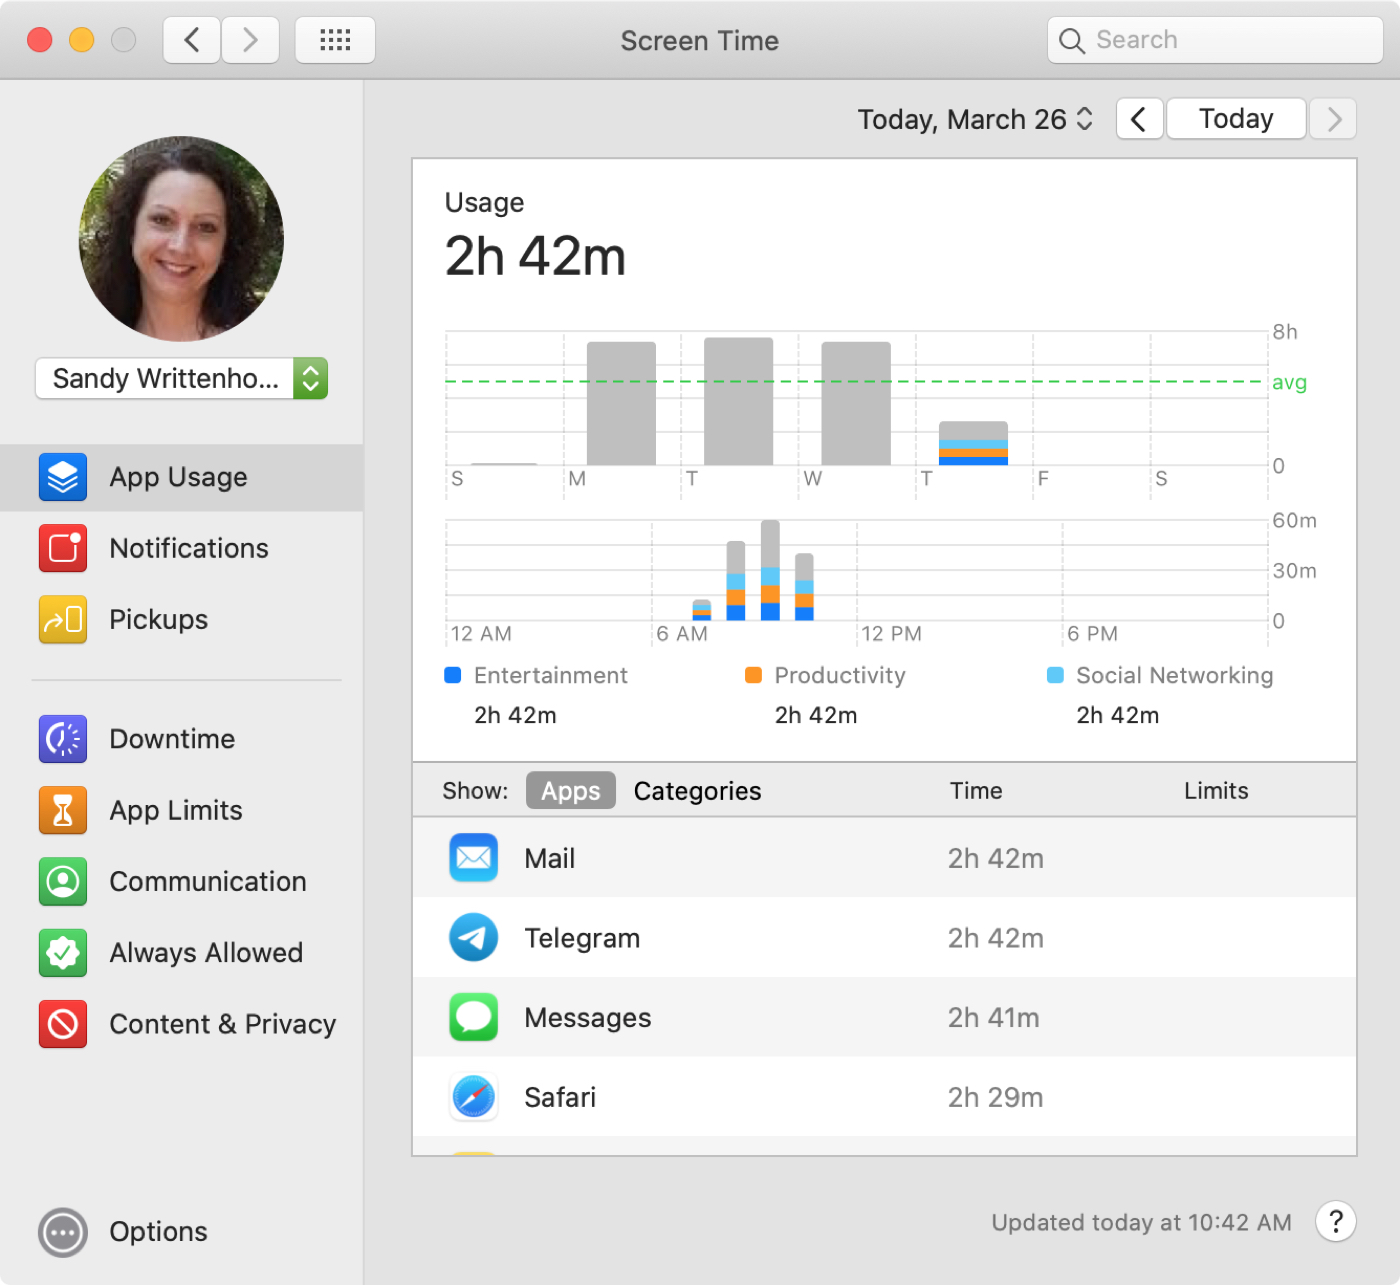 Screen Time App Usage Apps Mac